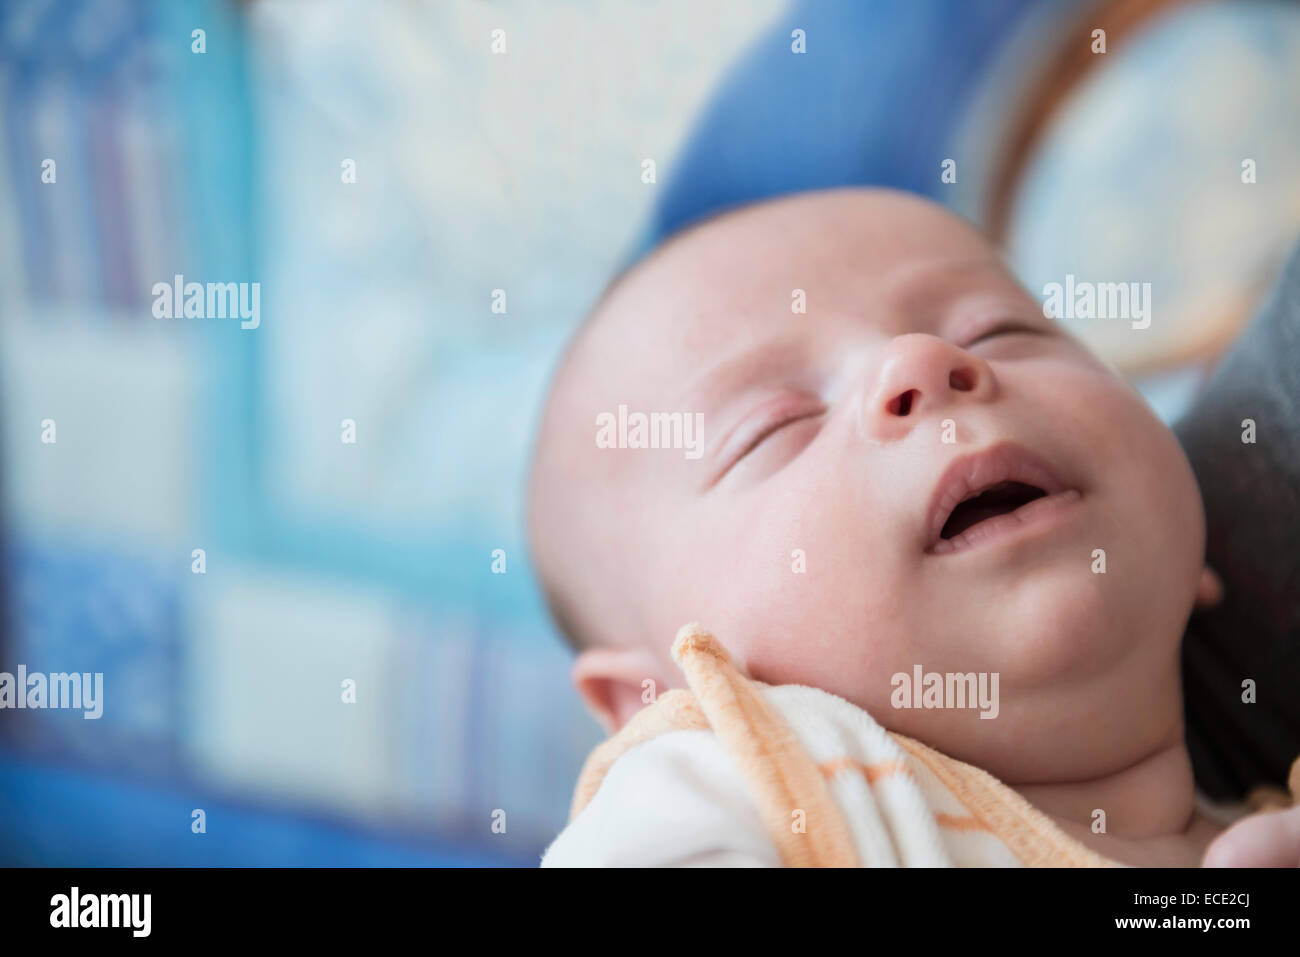 Baby boy sleeping in arms of father, close up - Stock Image